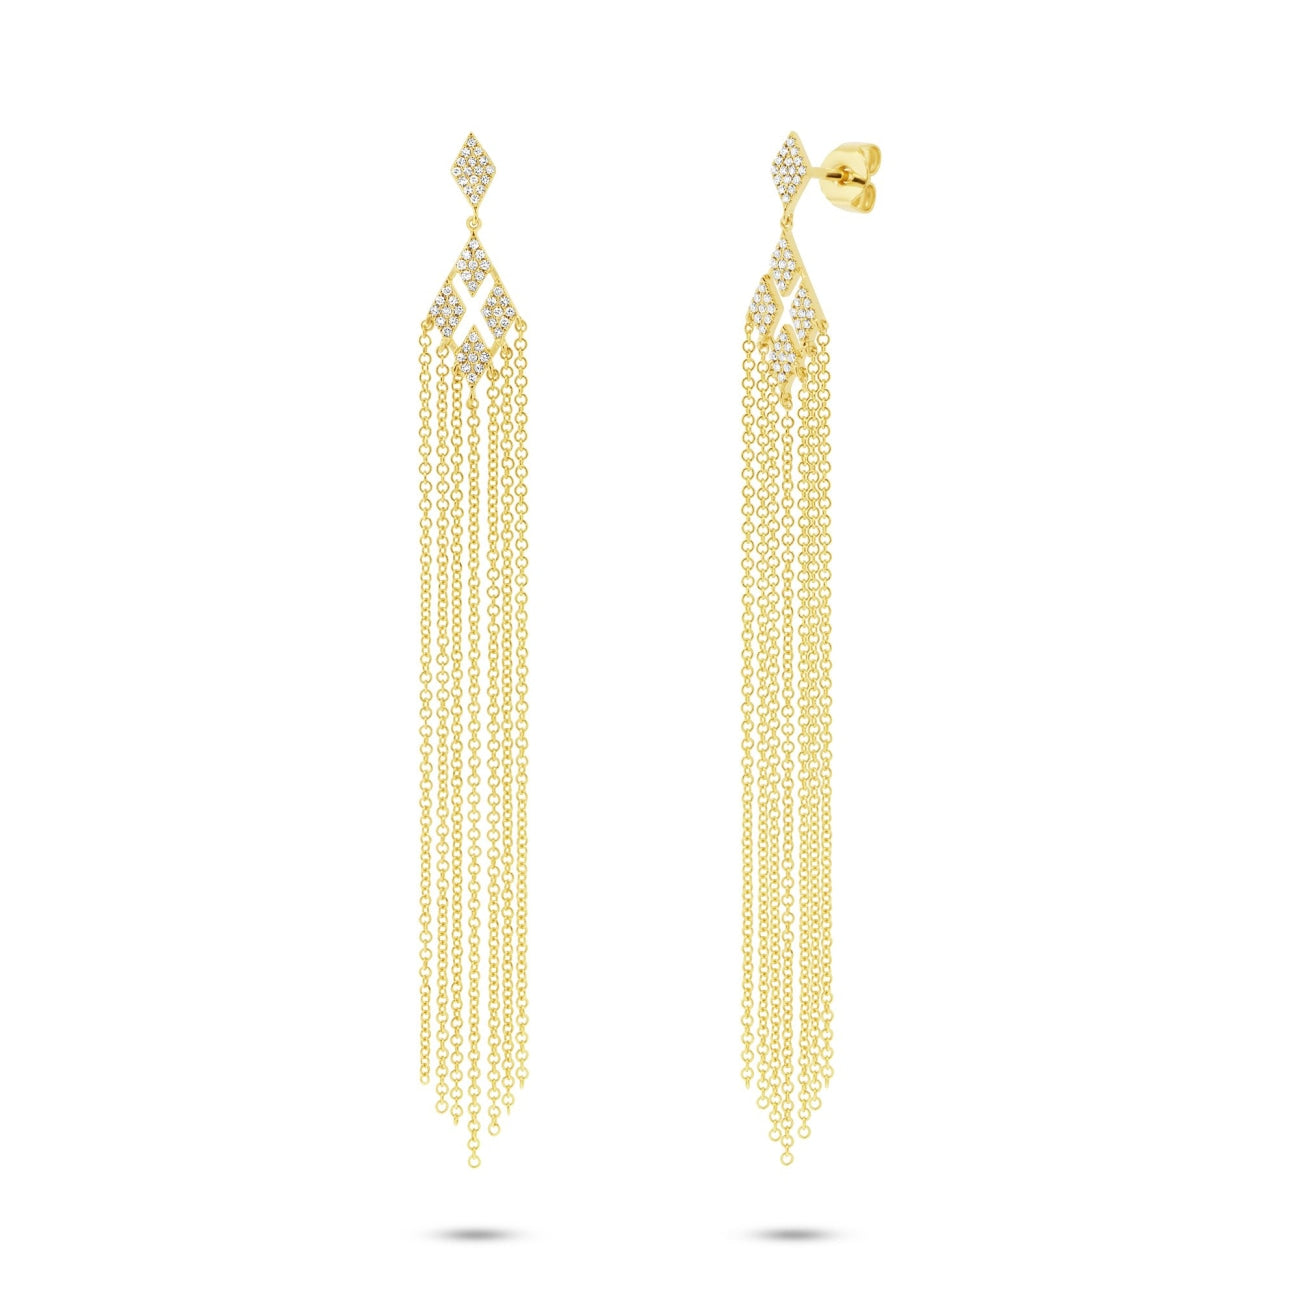 Shy Creation Jewelry - 0.25CT 14K YELLOW GOLD DIAMOND FRINGE EARRING | Manfredi Jewels